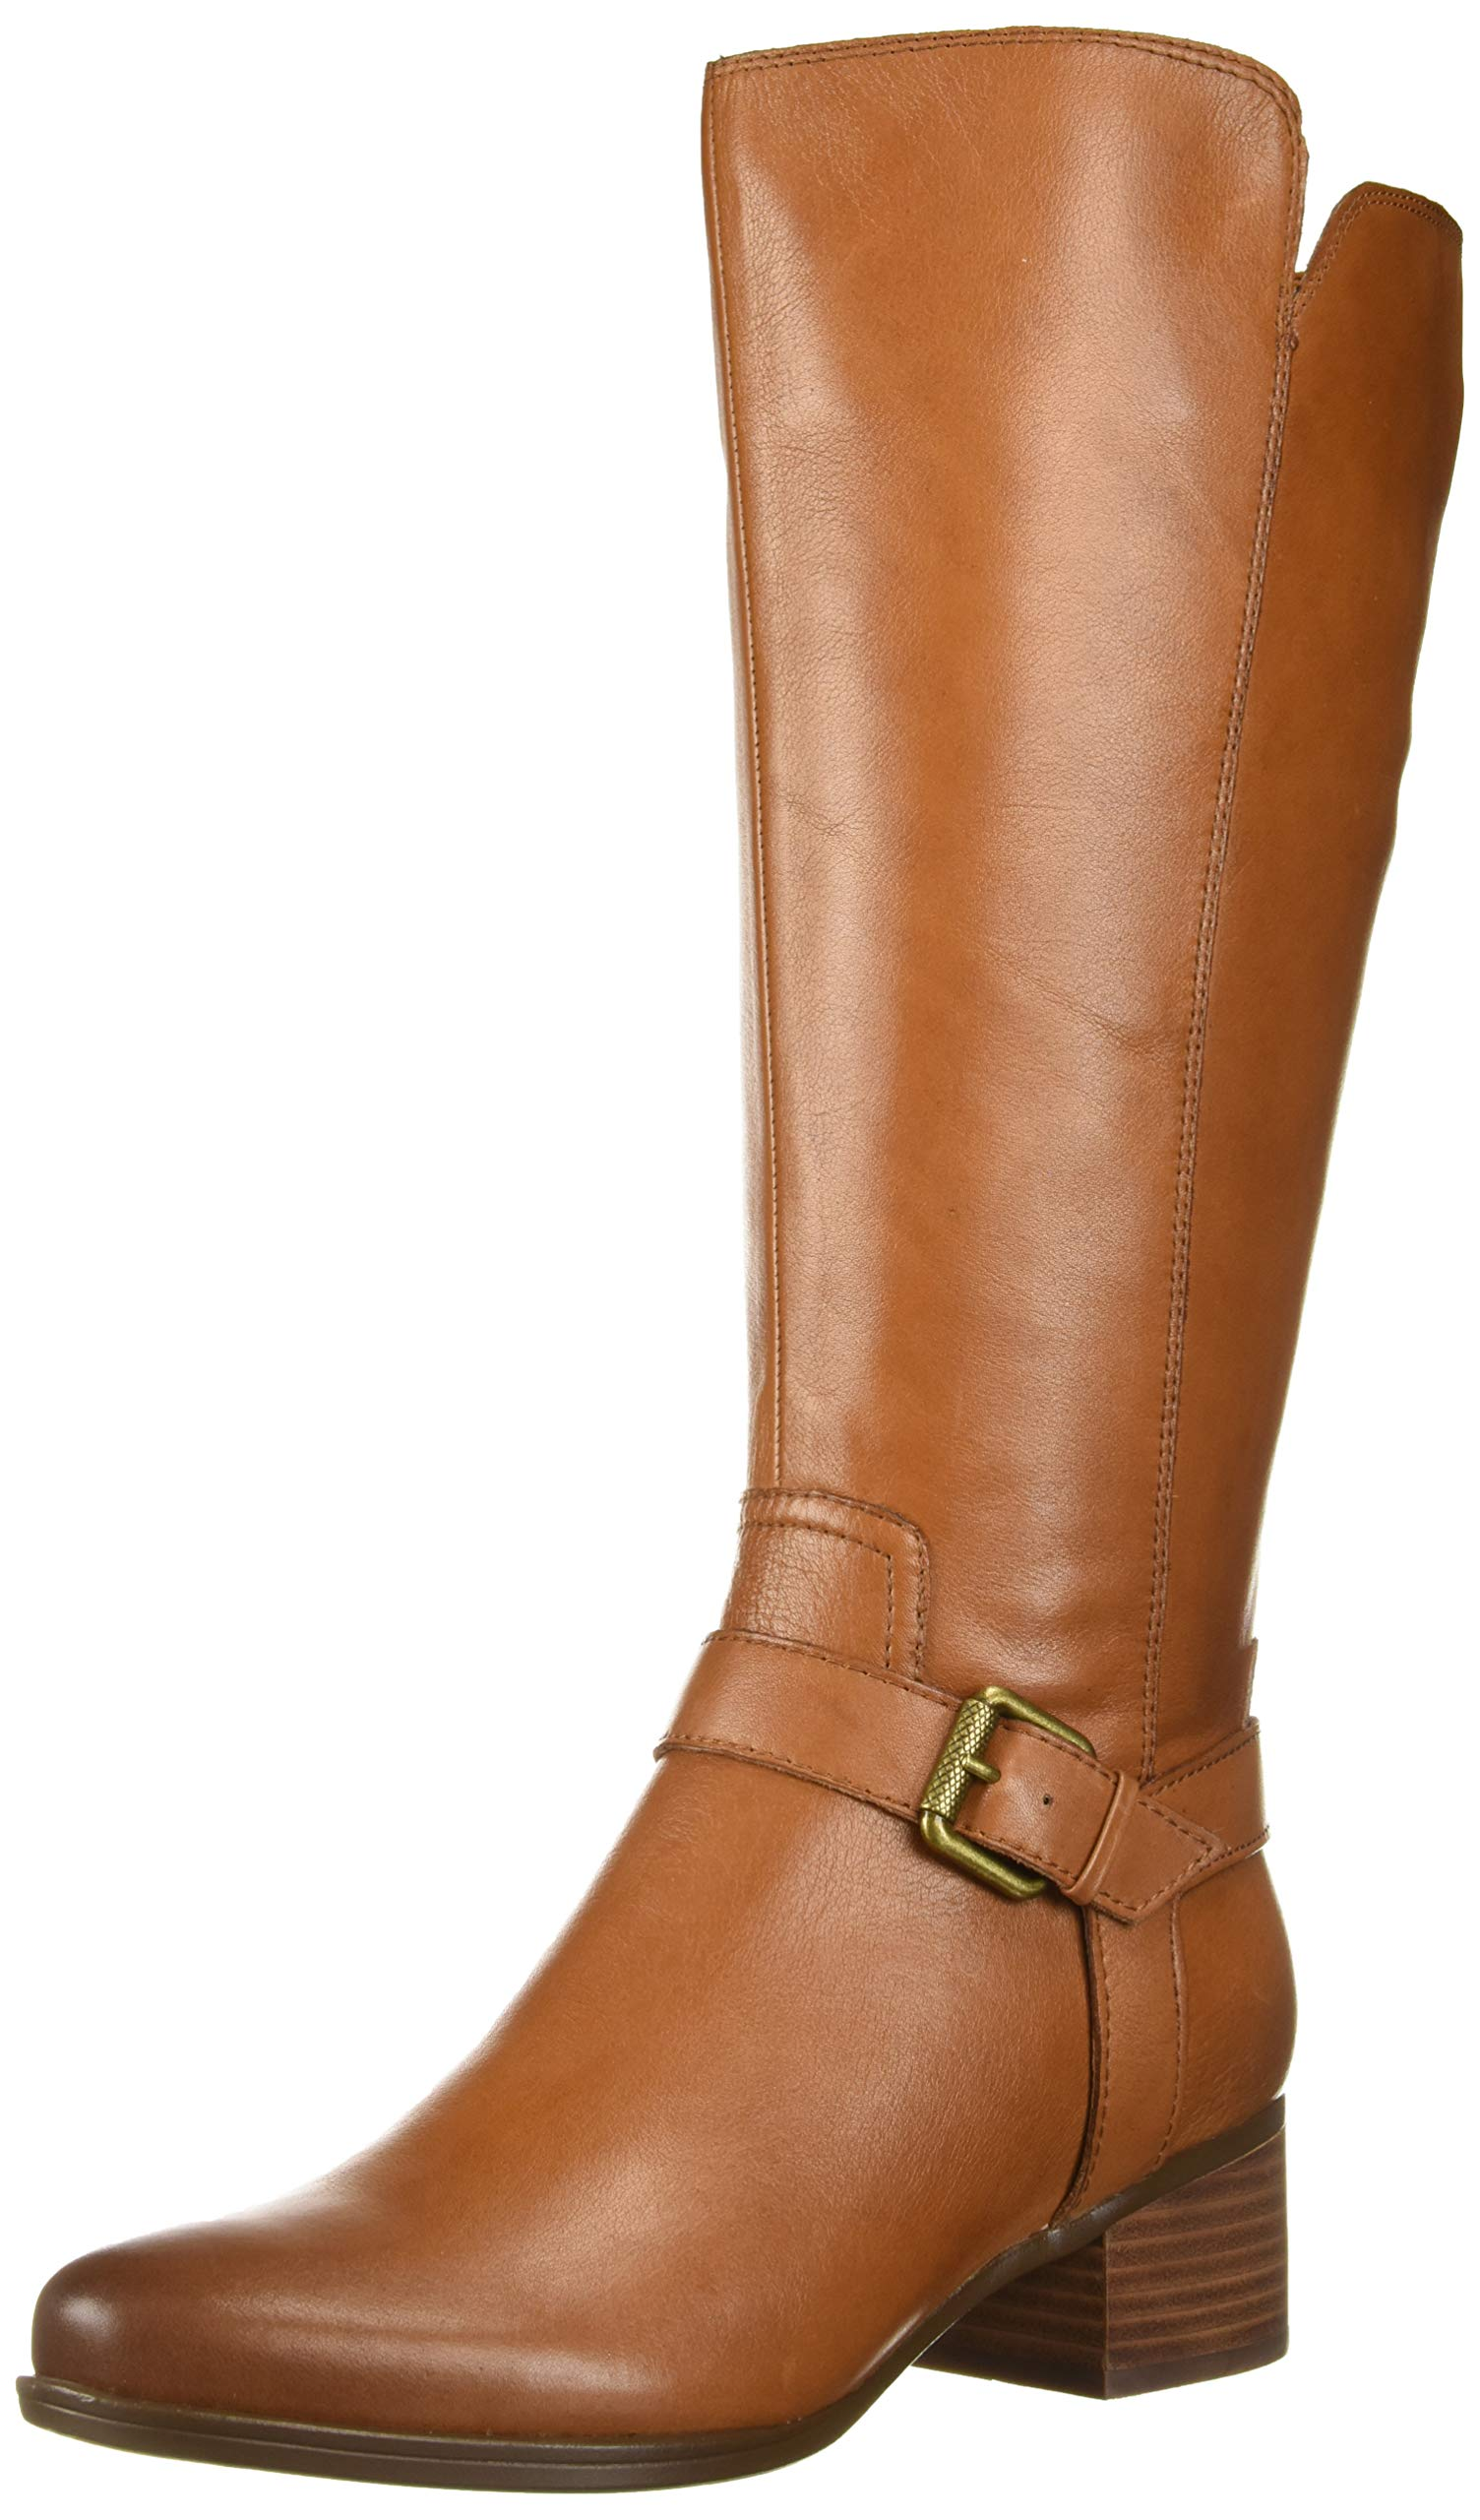 Naturalizer Women's Dalton Wide Calf Knee High Boot, Light Maple wc, 7.5 M US by Naturalizer